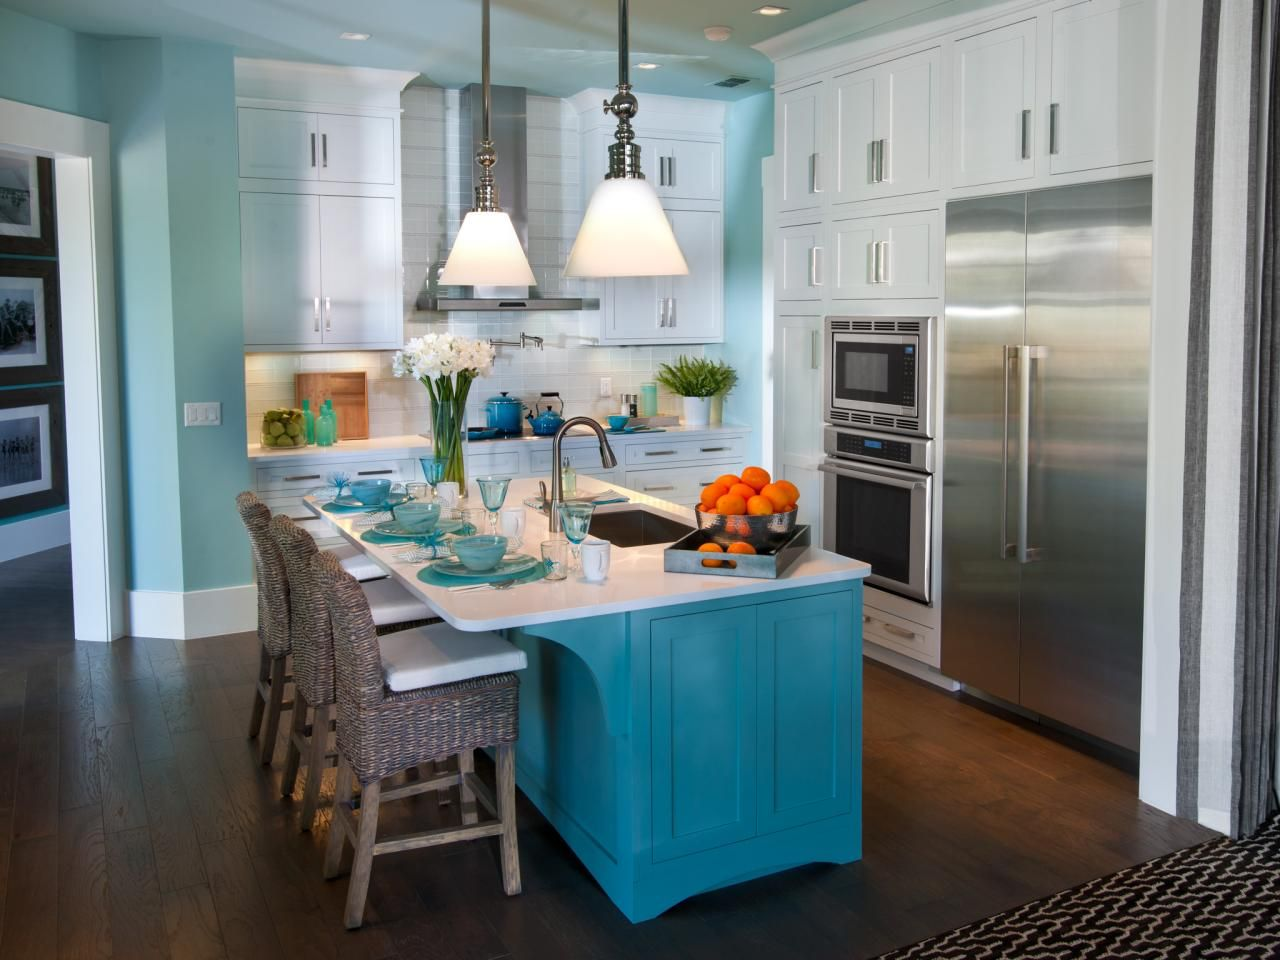 Pin by Jayme Champagne on Kitchen Paint Colors | Pinterest | Hgtv ...